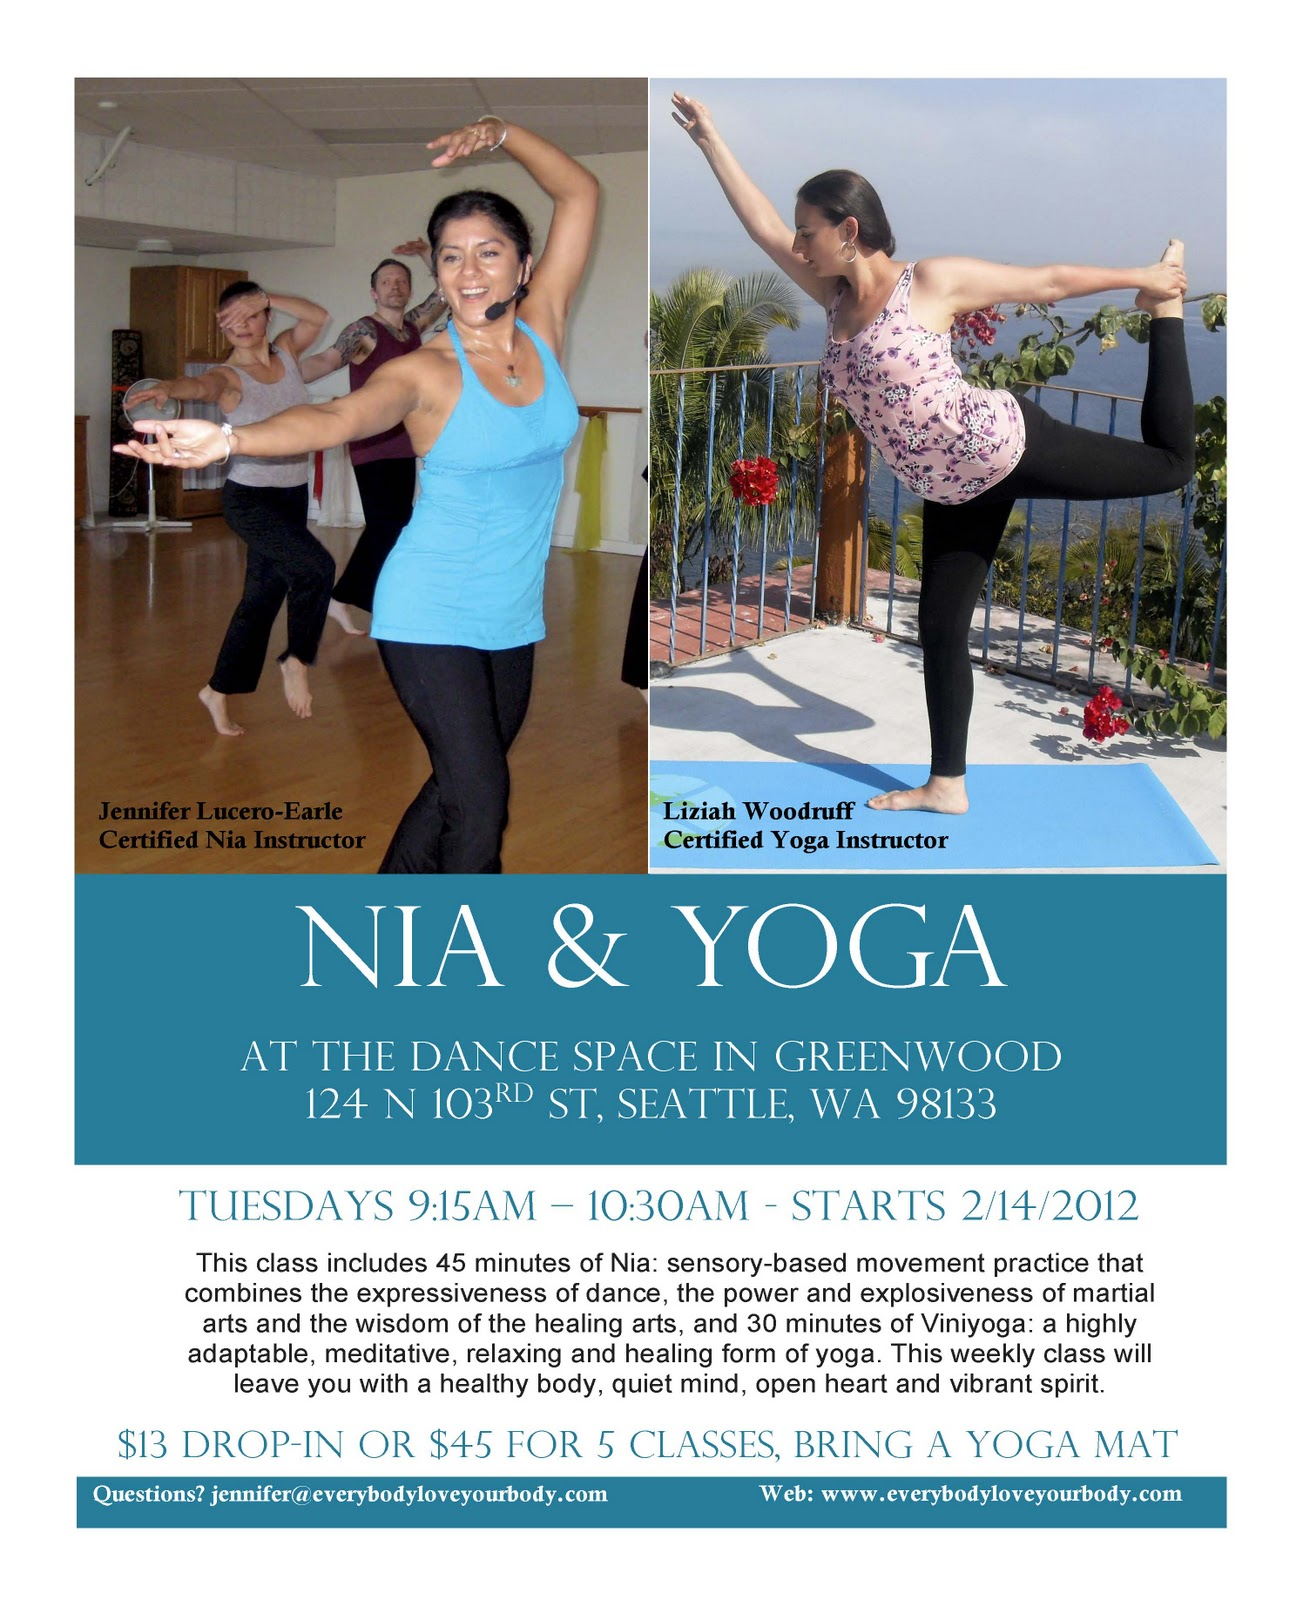 Everybody, Love Your Body: New Nia-Yoga Class Starts